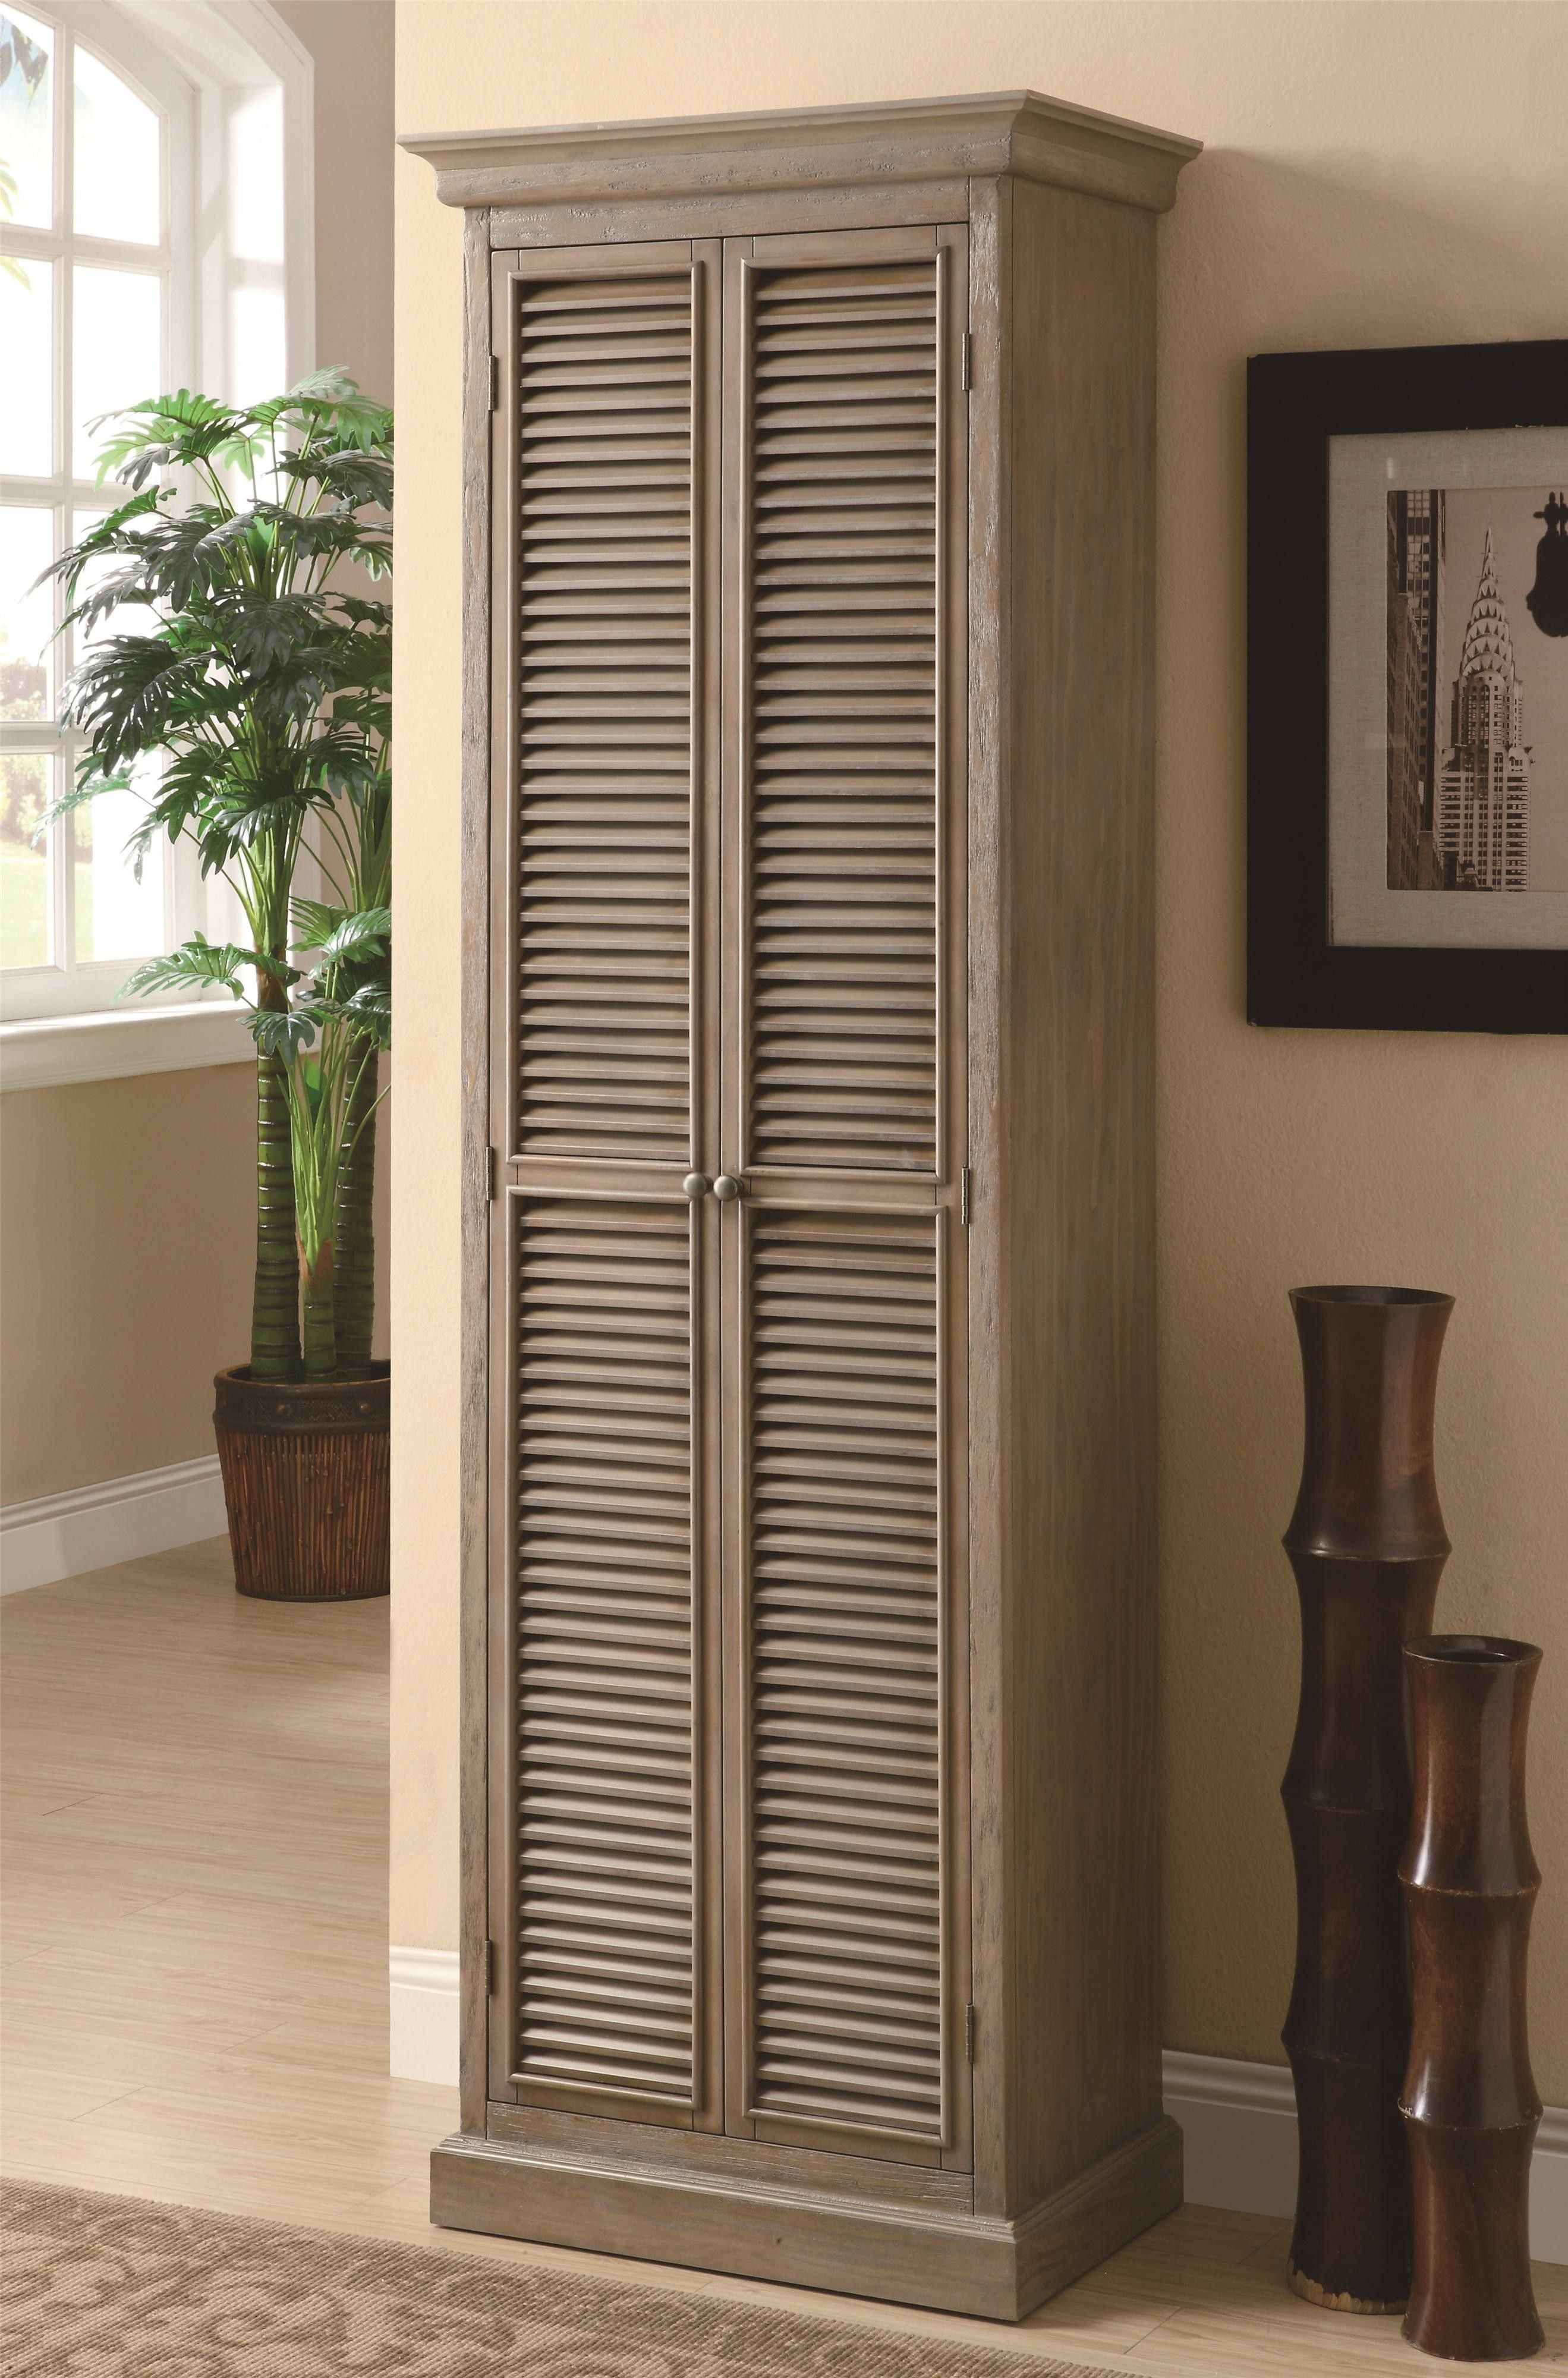 Narrow Cabinet with Doors Elegant Tall Narrow Storage Cabinets with Doors